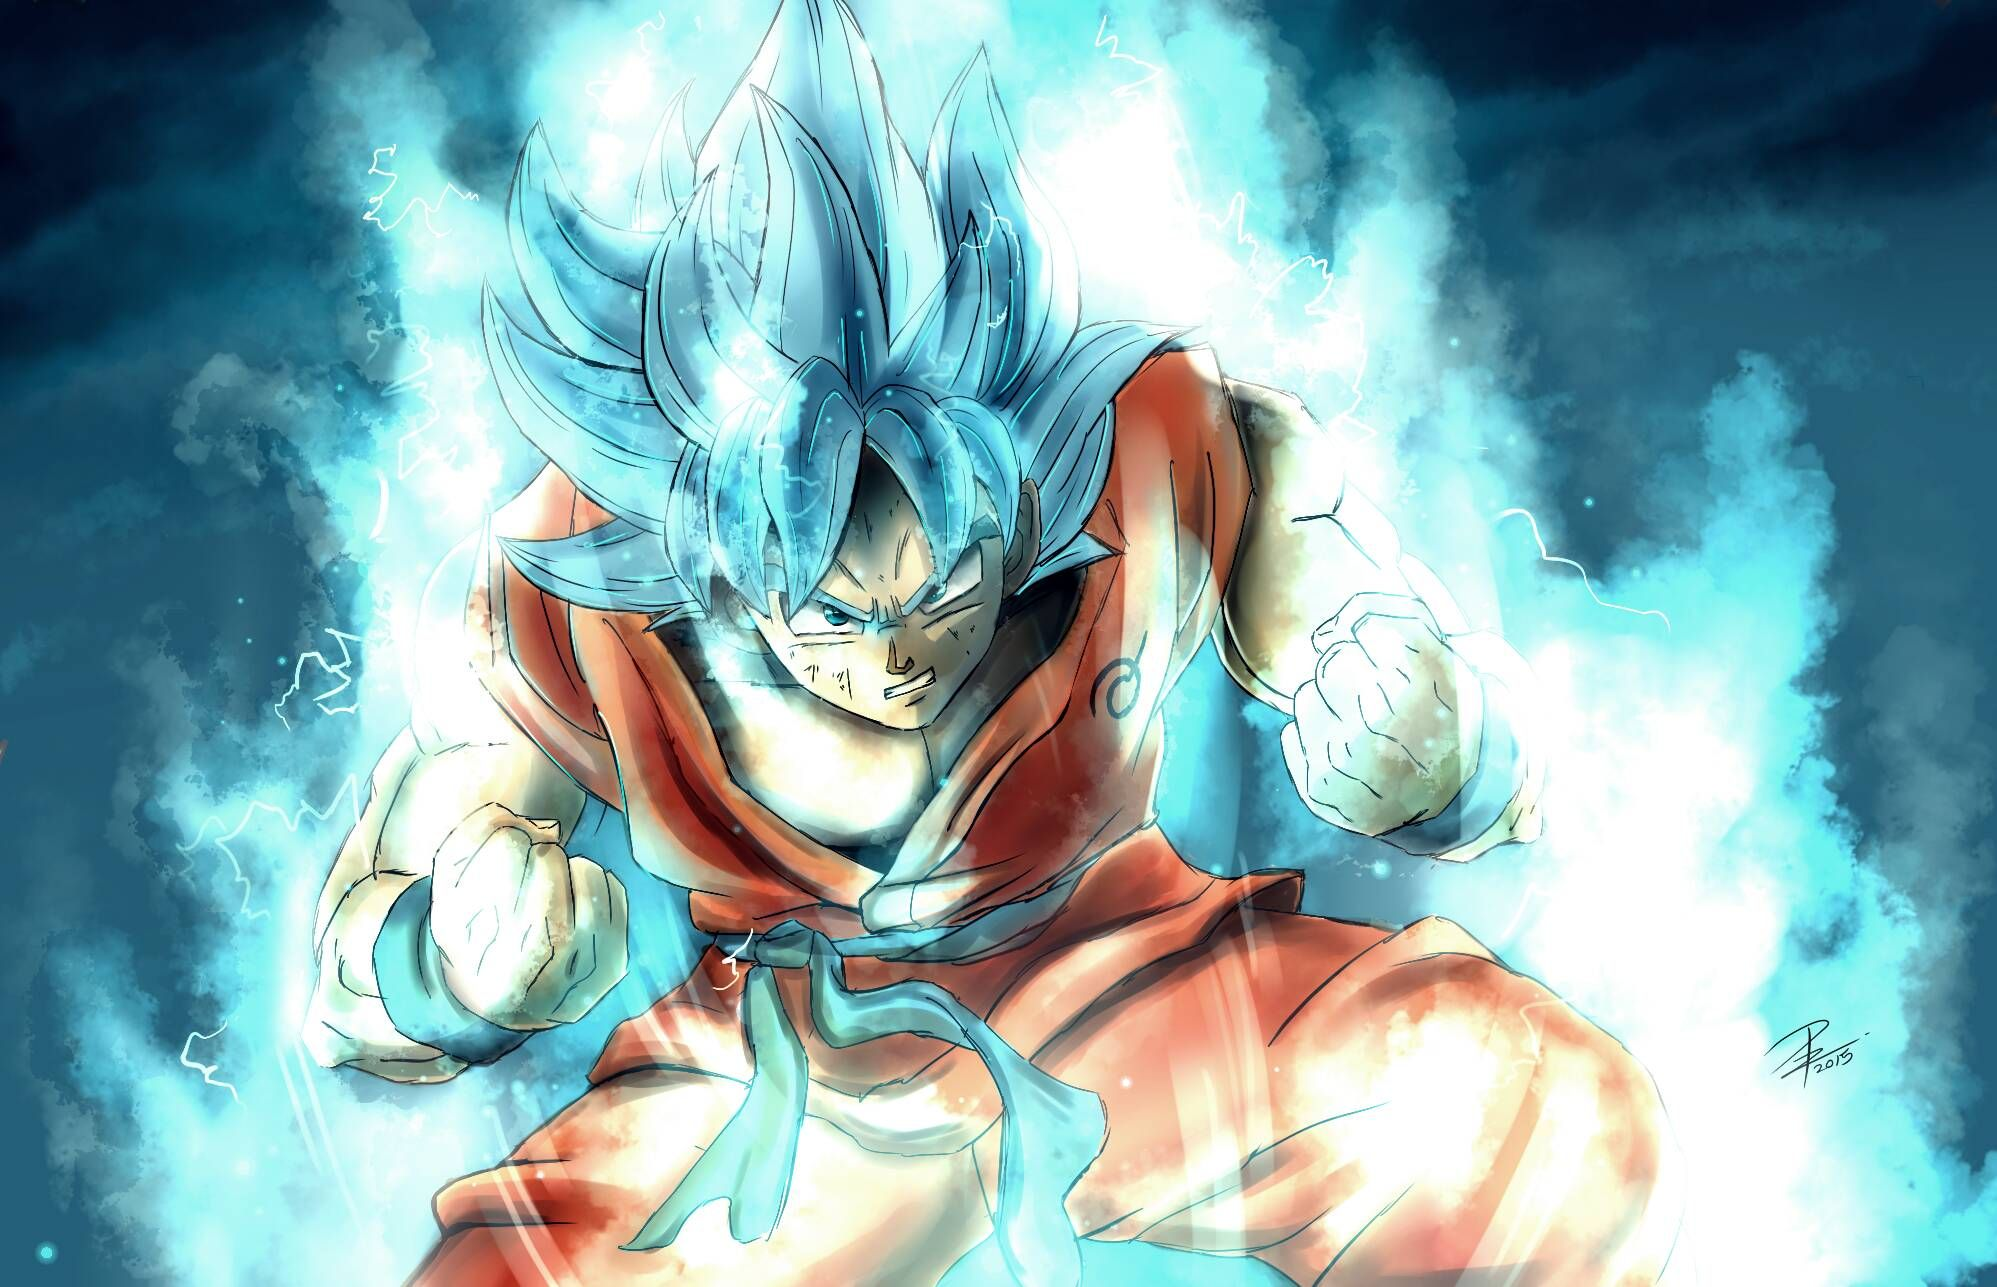 Fandom Express Online Shopping For Anime Hero Games Many More Fandom Dragon Ball Goku Dragon Ball Super Goku Anime Dragon Ball Super